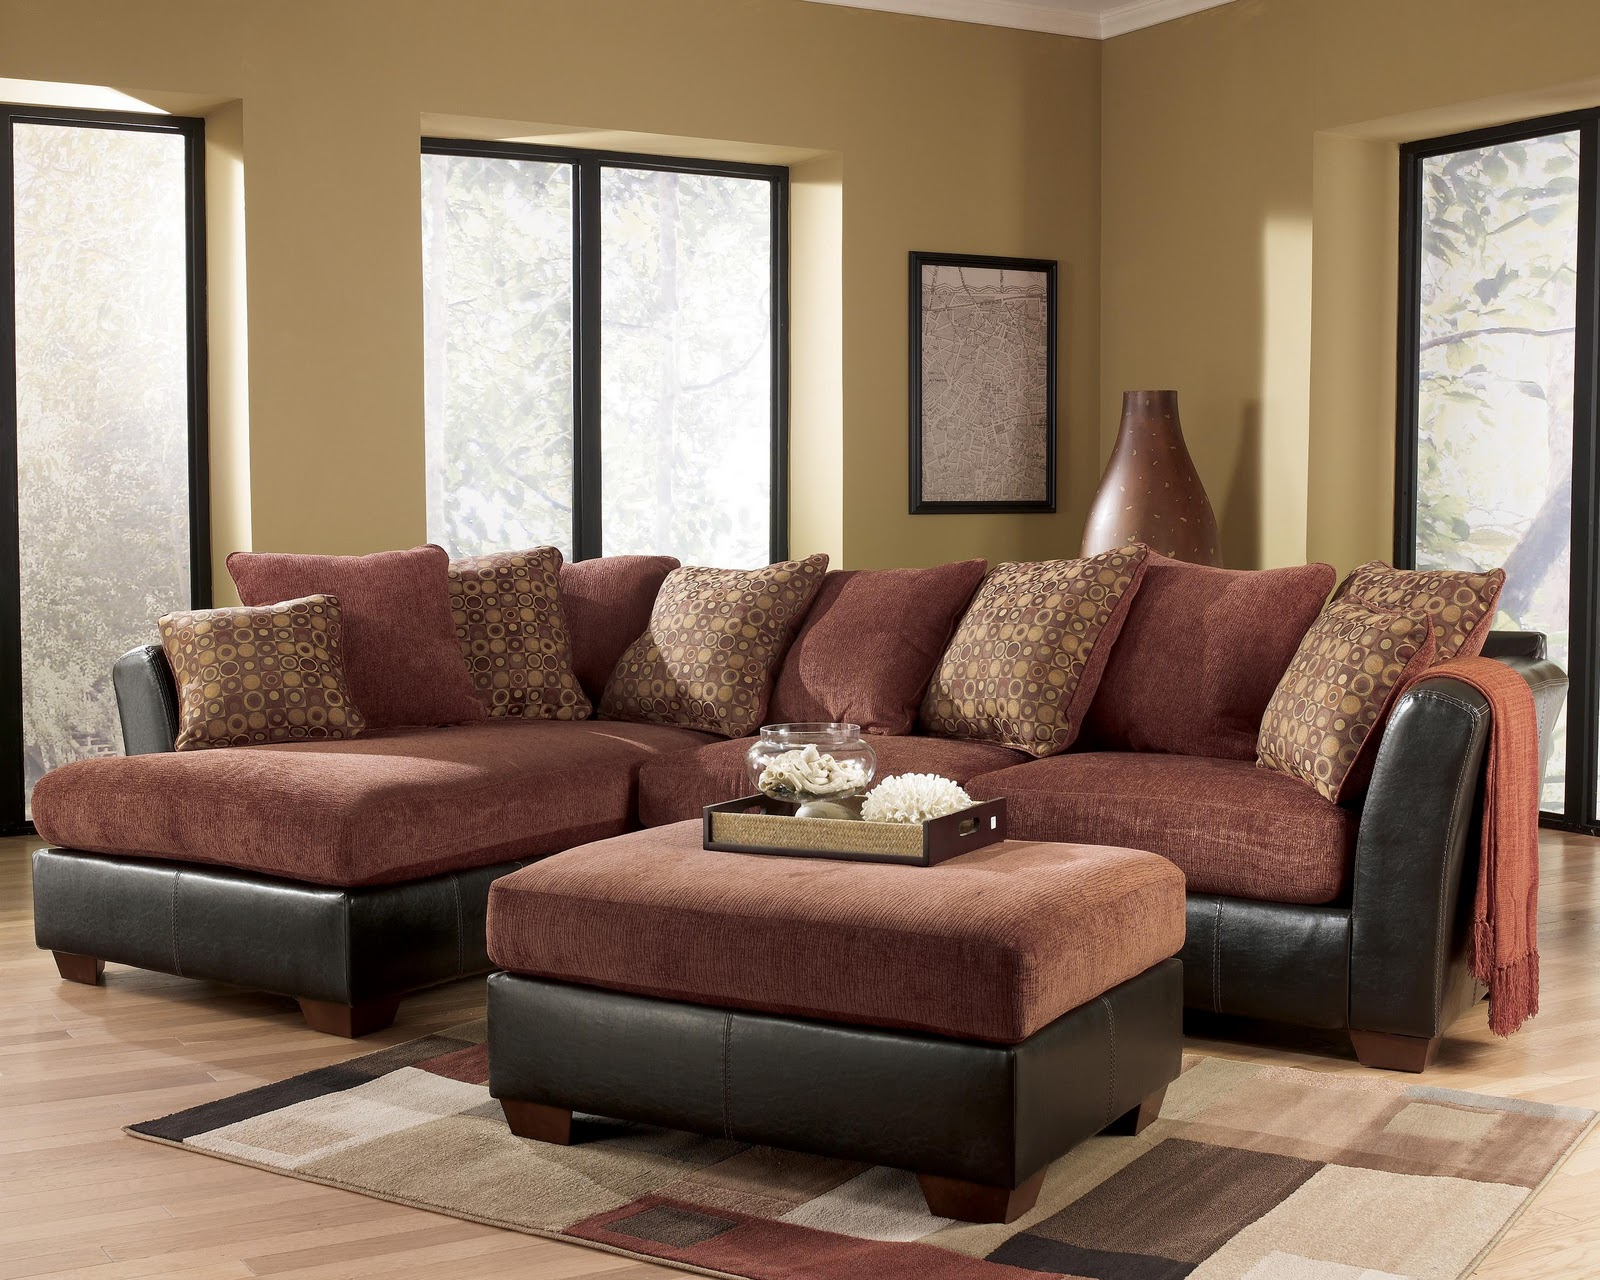 Ashley furniture larson 31400 cinnamon sofa sectional for Furniture xchange new jersey